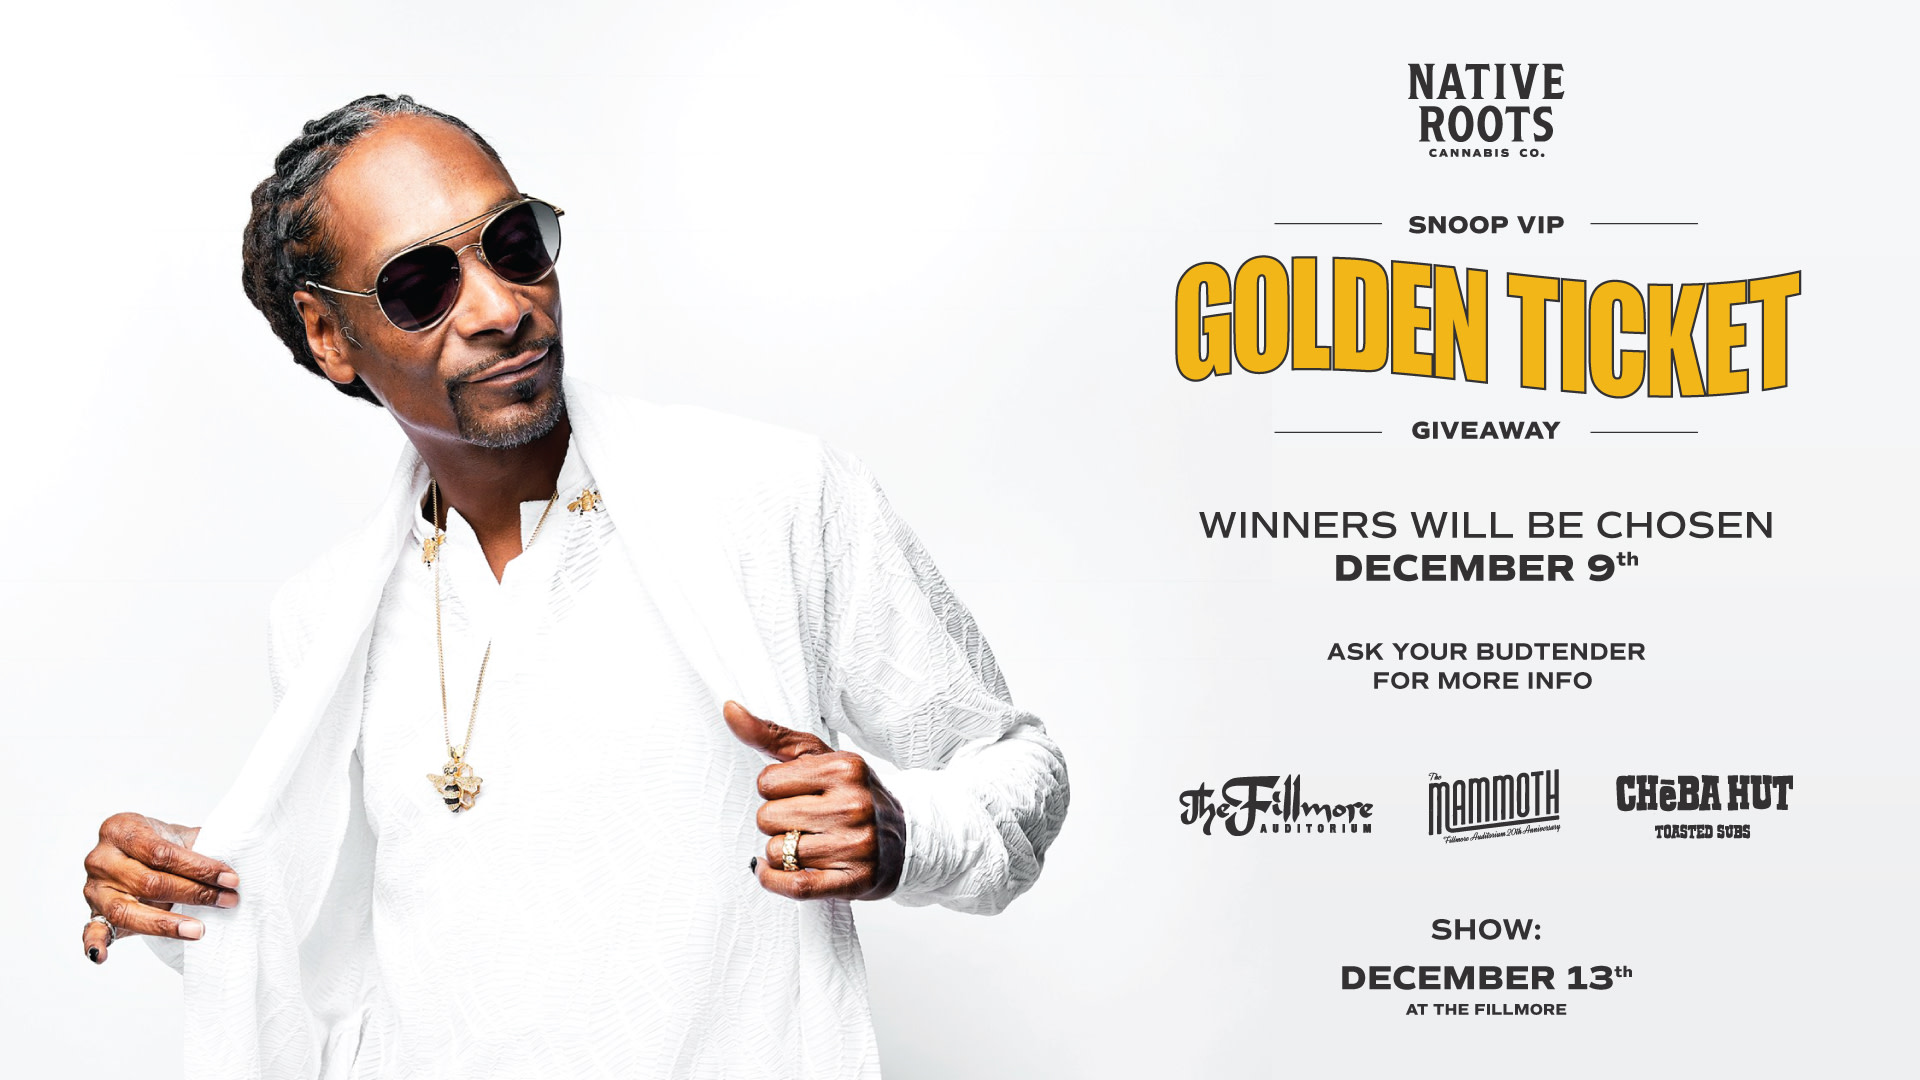 Snoop Concert Giveaway from Native Roots Cannabis Company